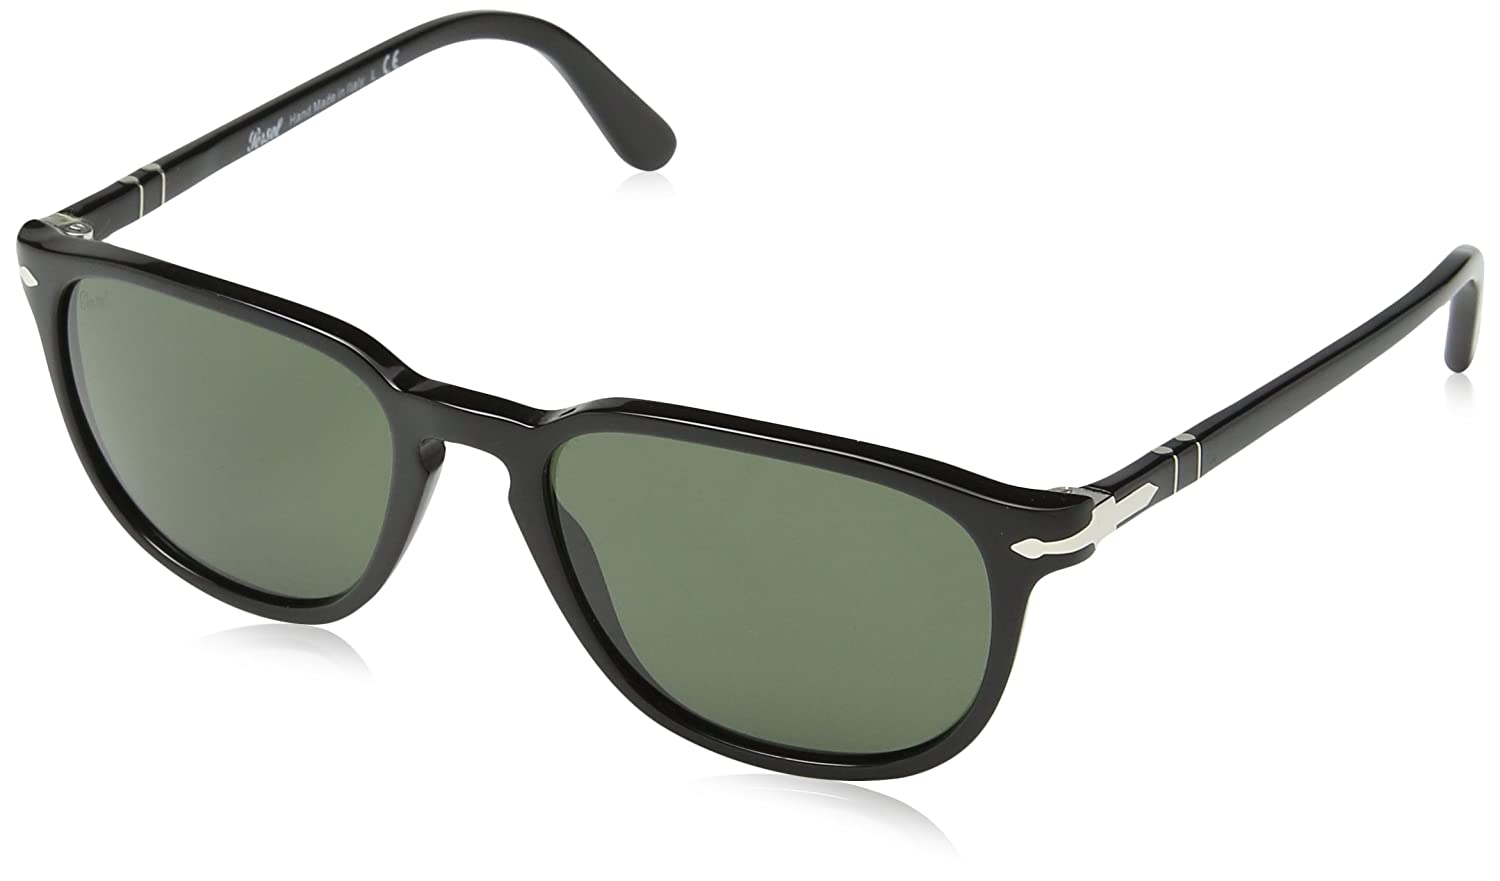 fee3b17f2c29 Persol Sunglasses Mod.3019S 52 mm, Black/Grey: Persol: Amazon.co.uk:  Clothing